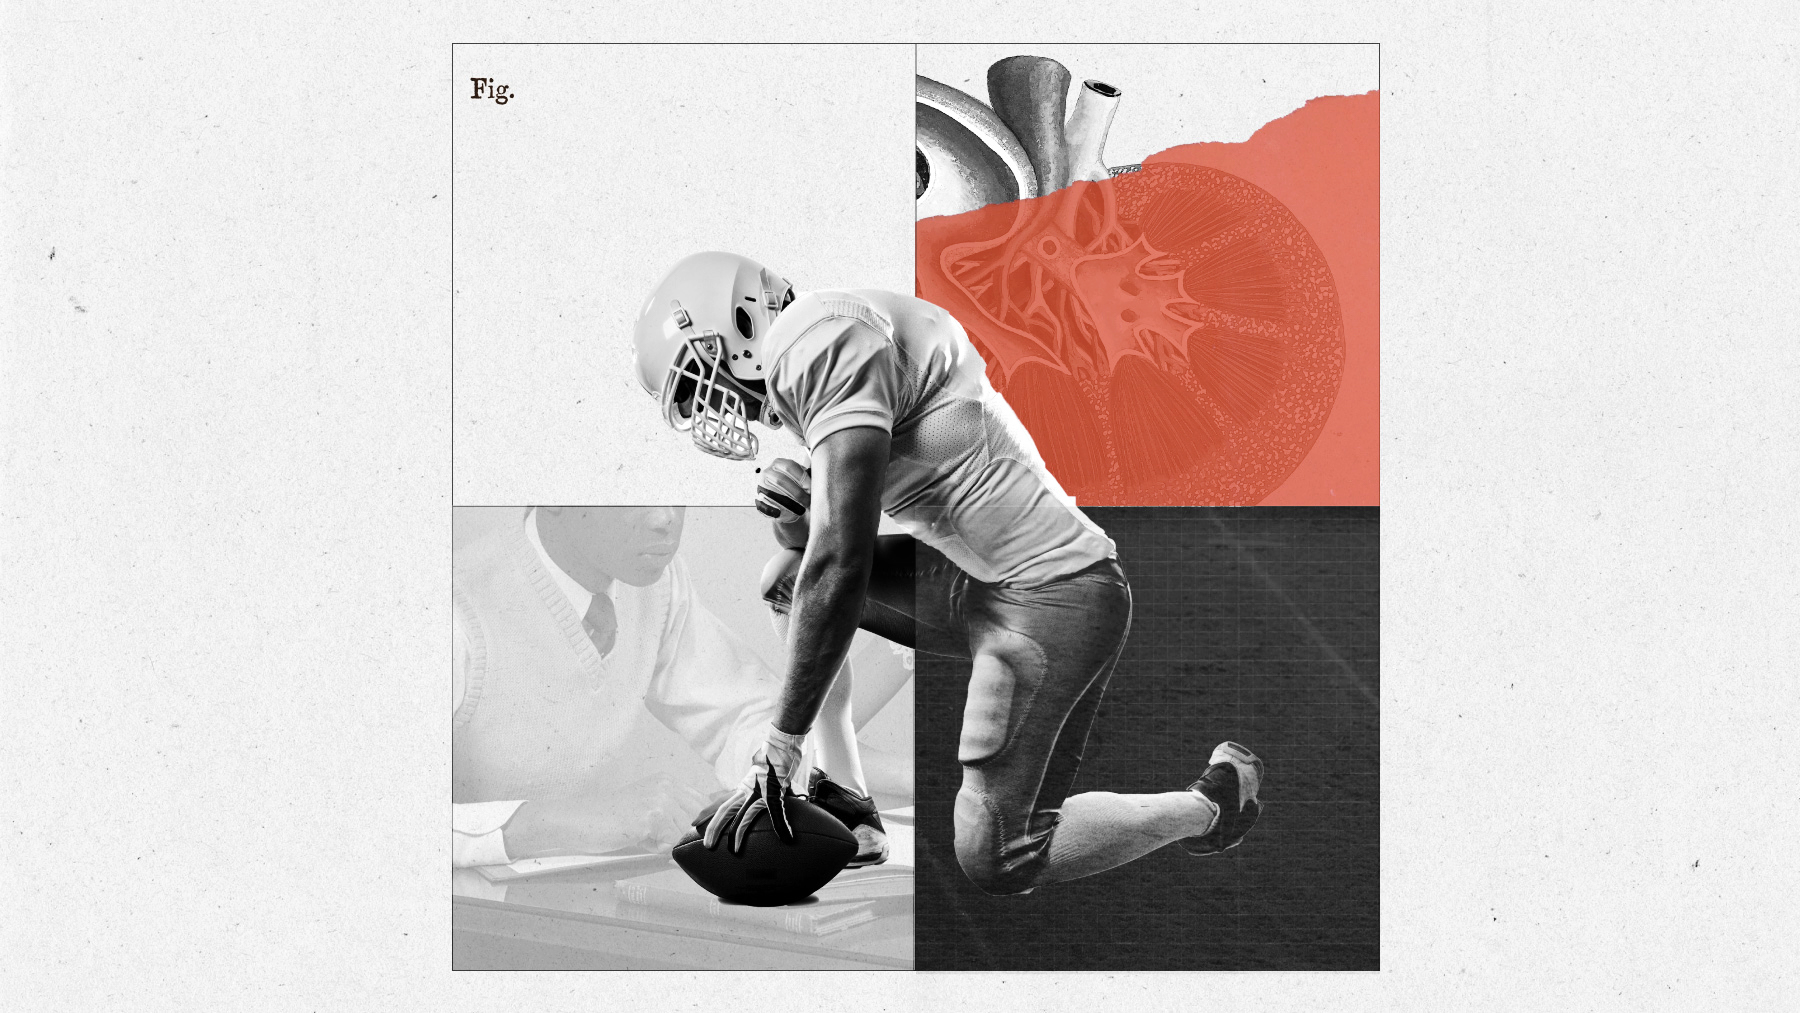 Photo illustration of a uniformed football player kneeling with one hand on a ball on the ground.